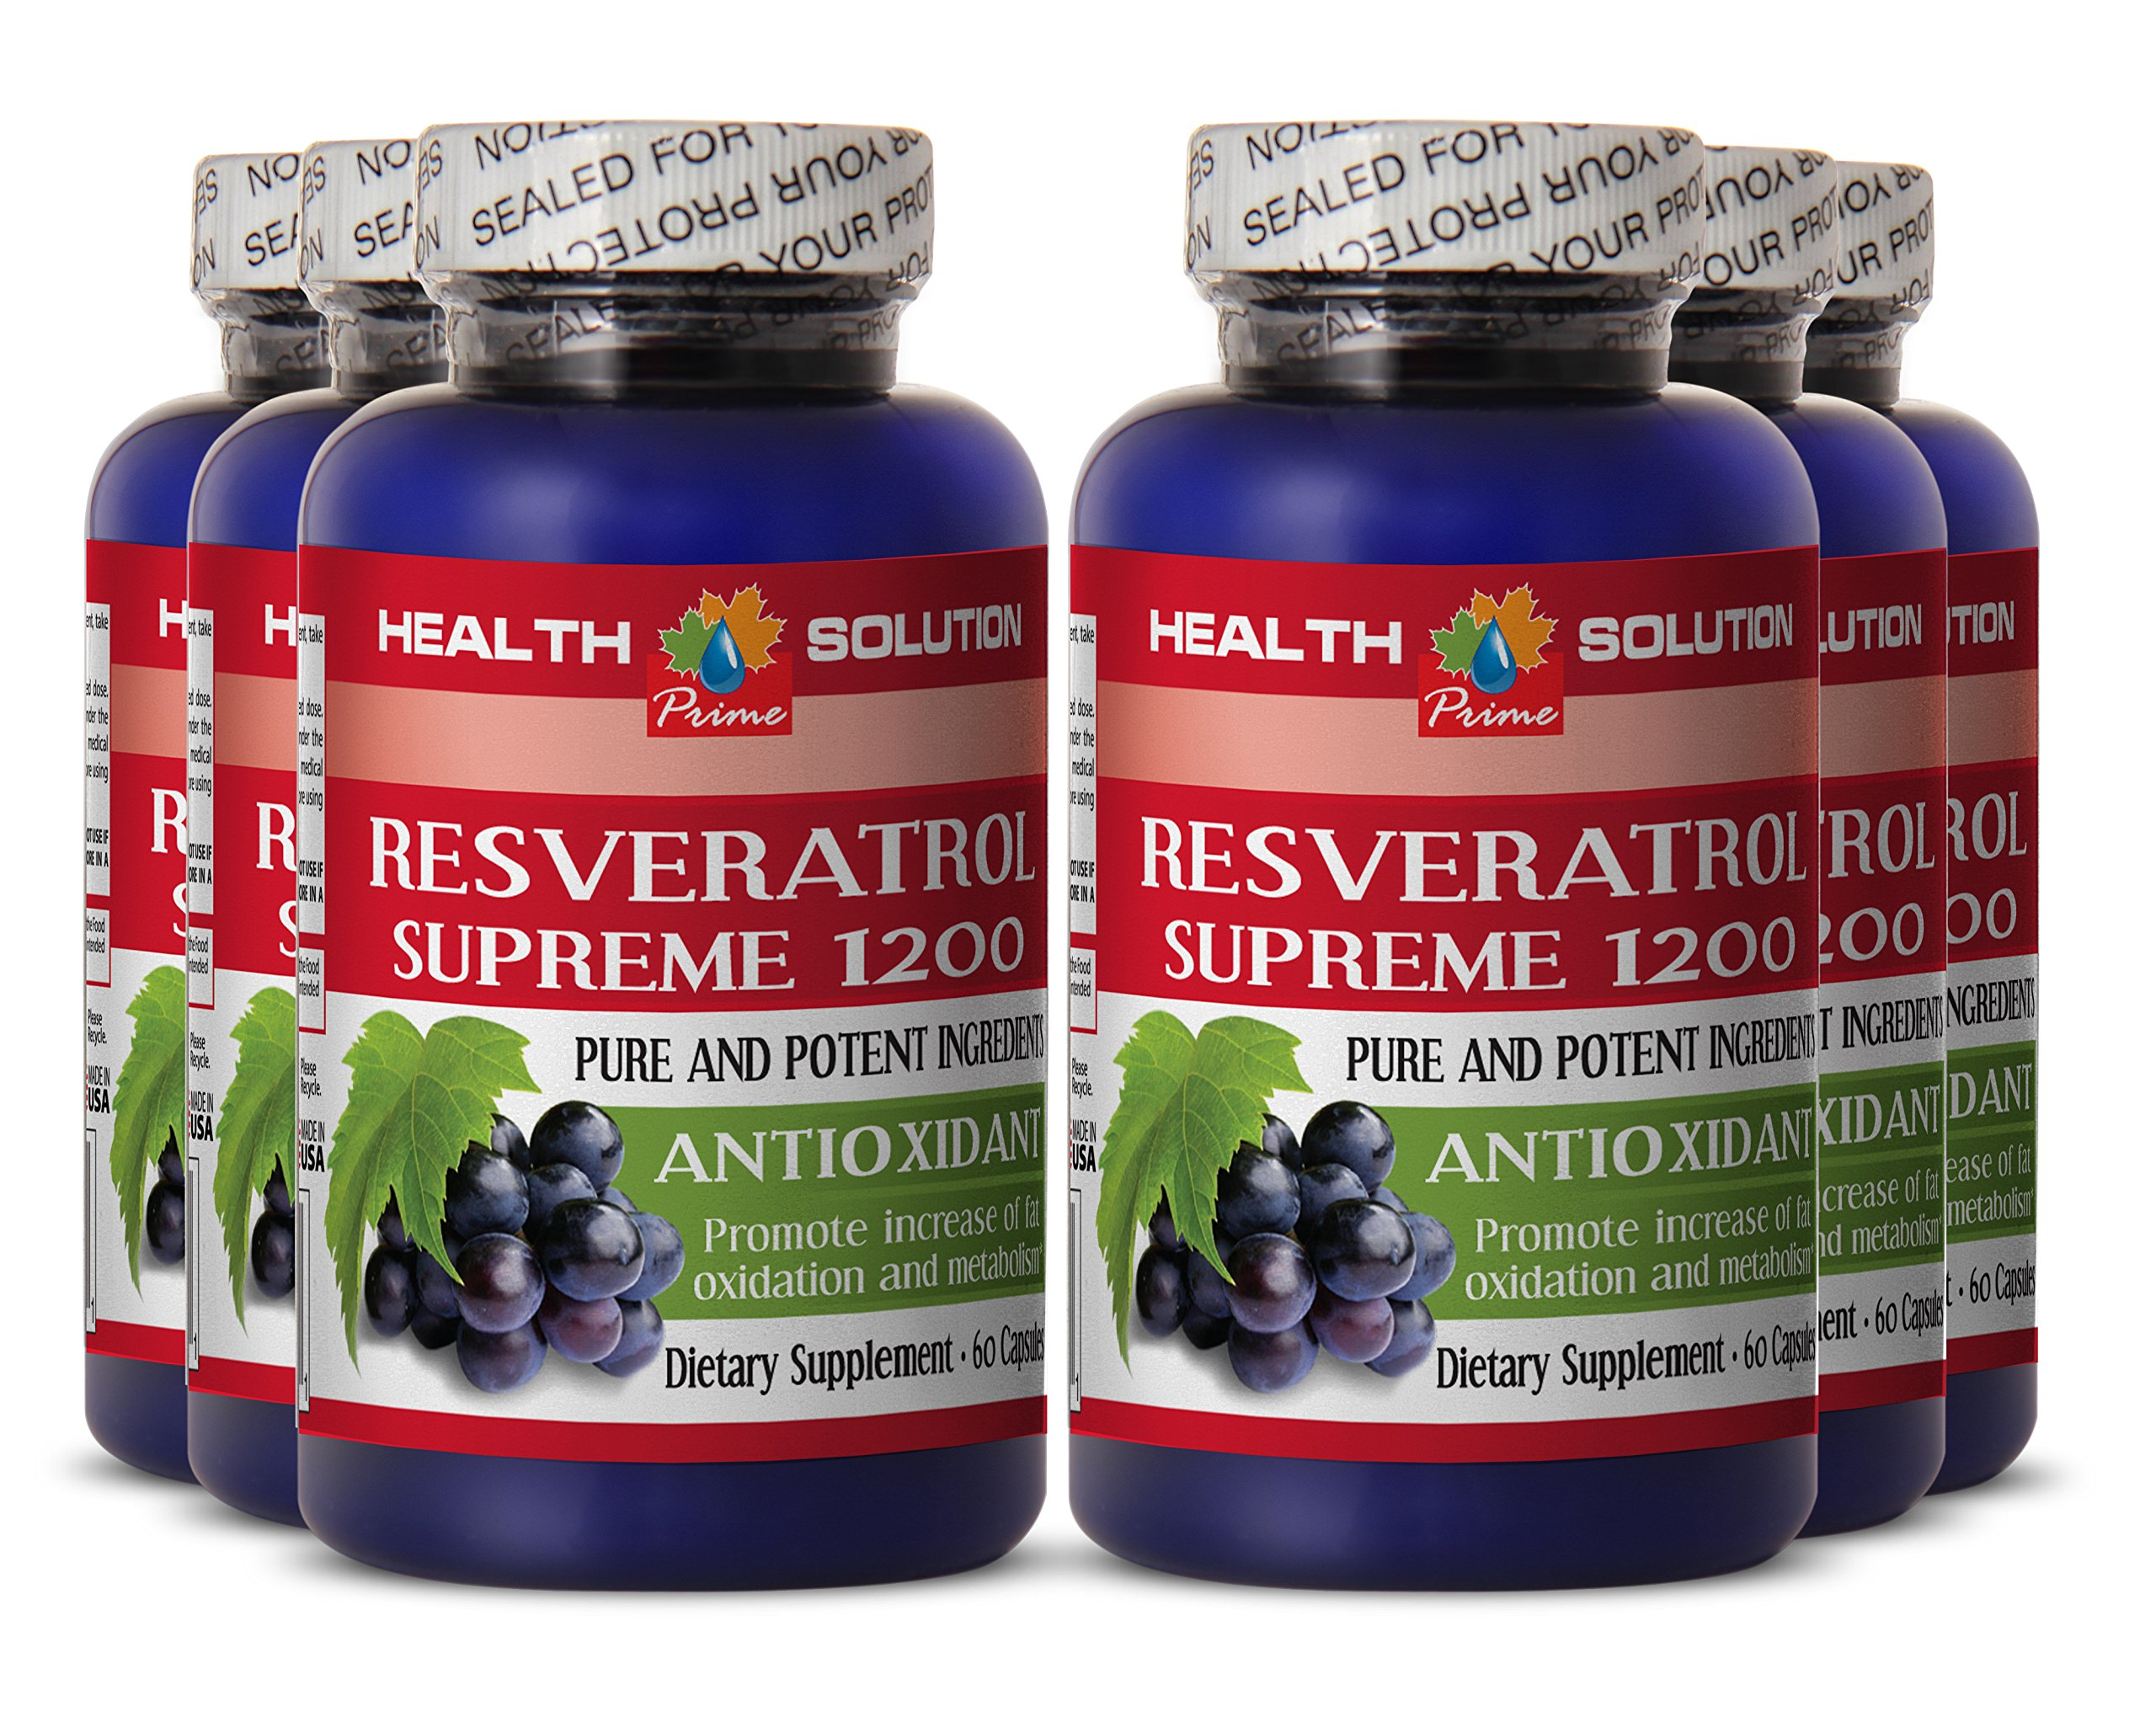 Resveratrol weight loss - RESVERATROL SUPREME 1200MG - promote skin and eye health (6 Bottles)